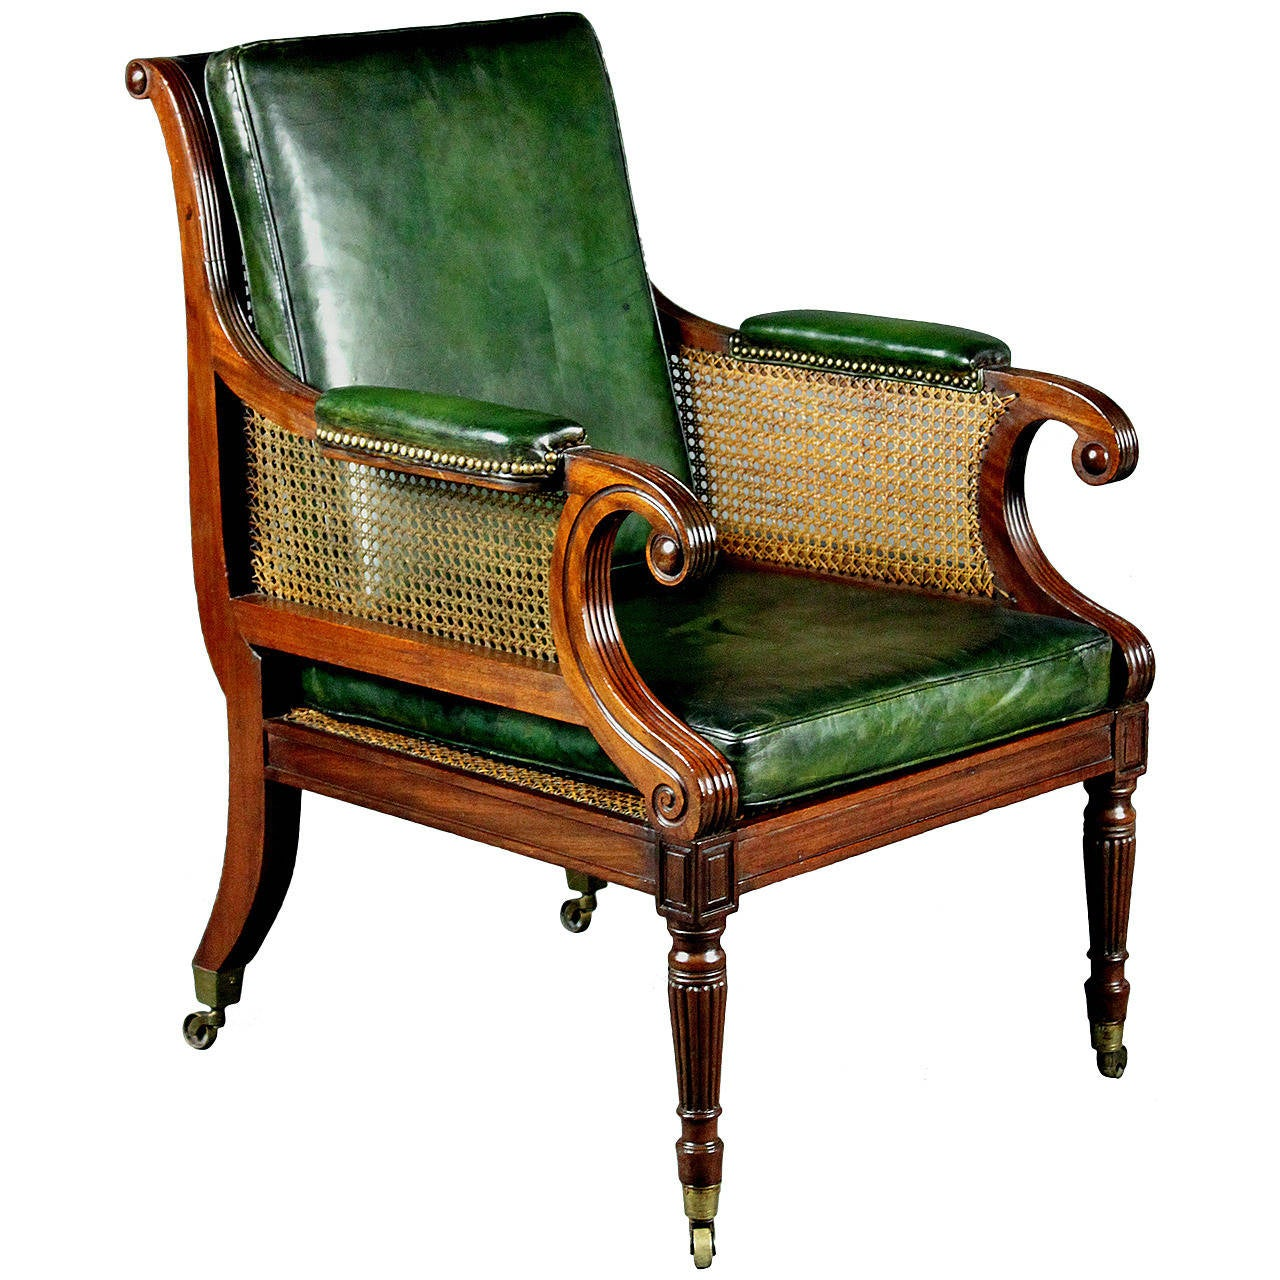 Regency bergere chair at 1stdibs for Furniture chairs